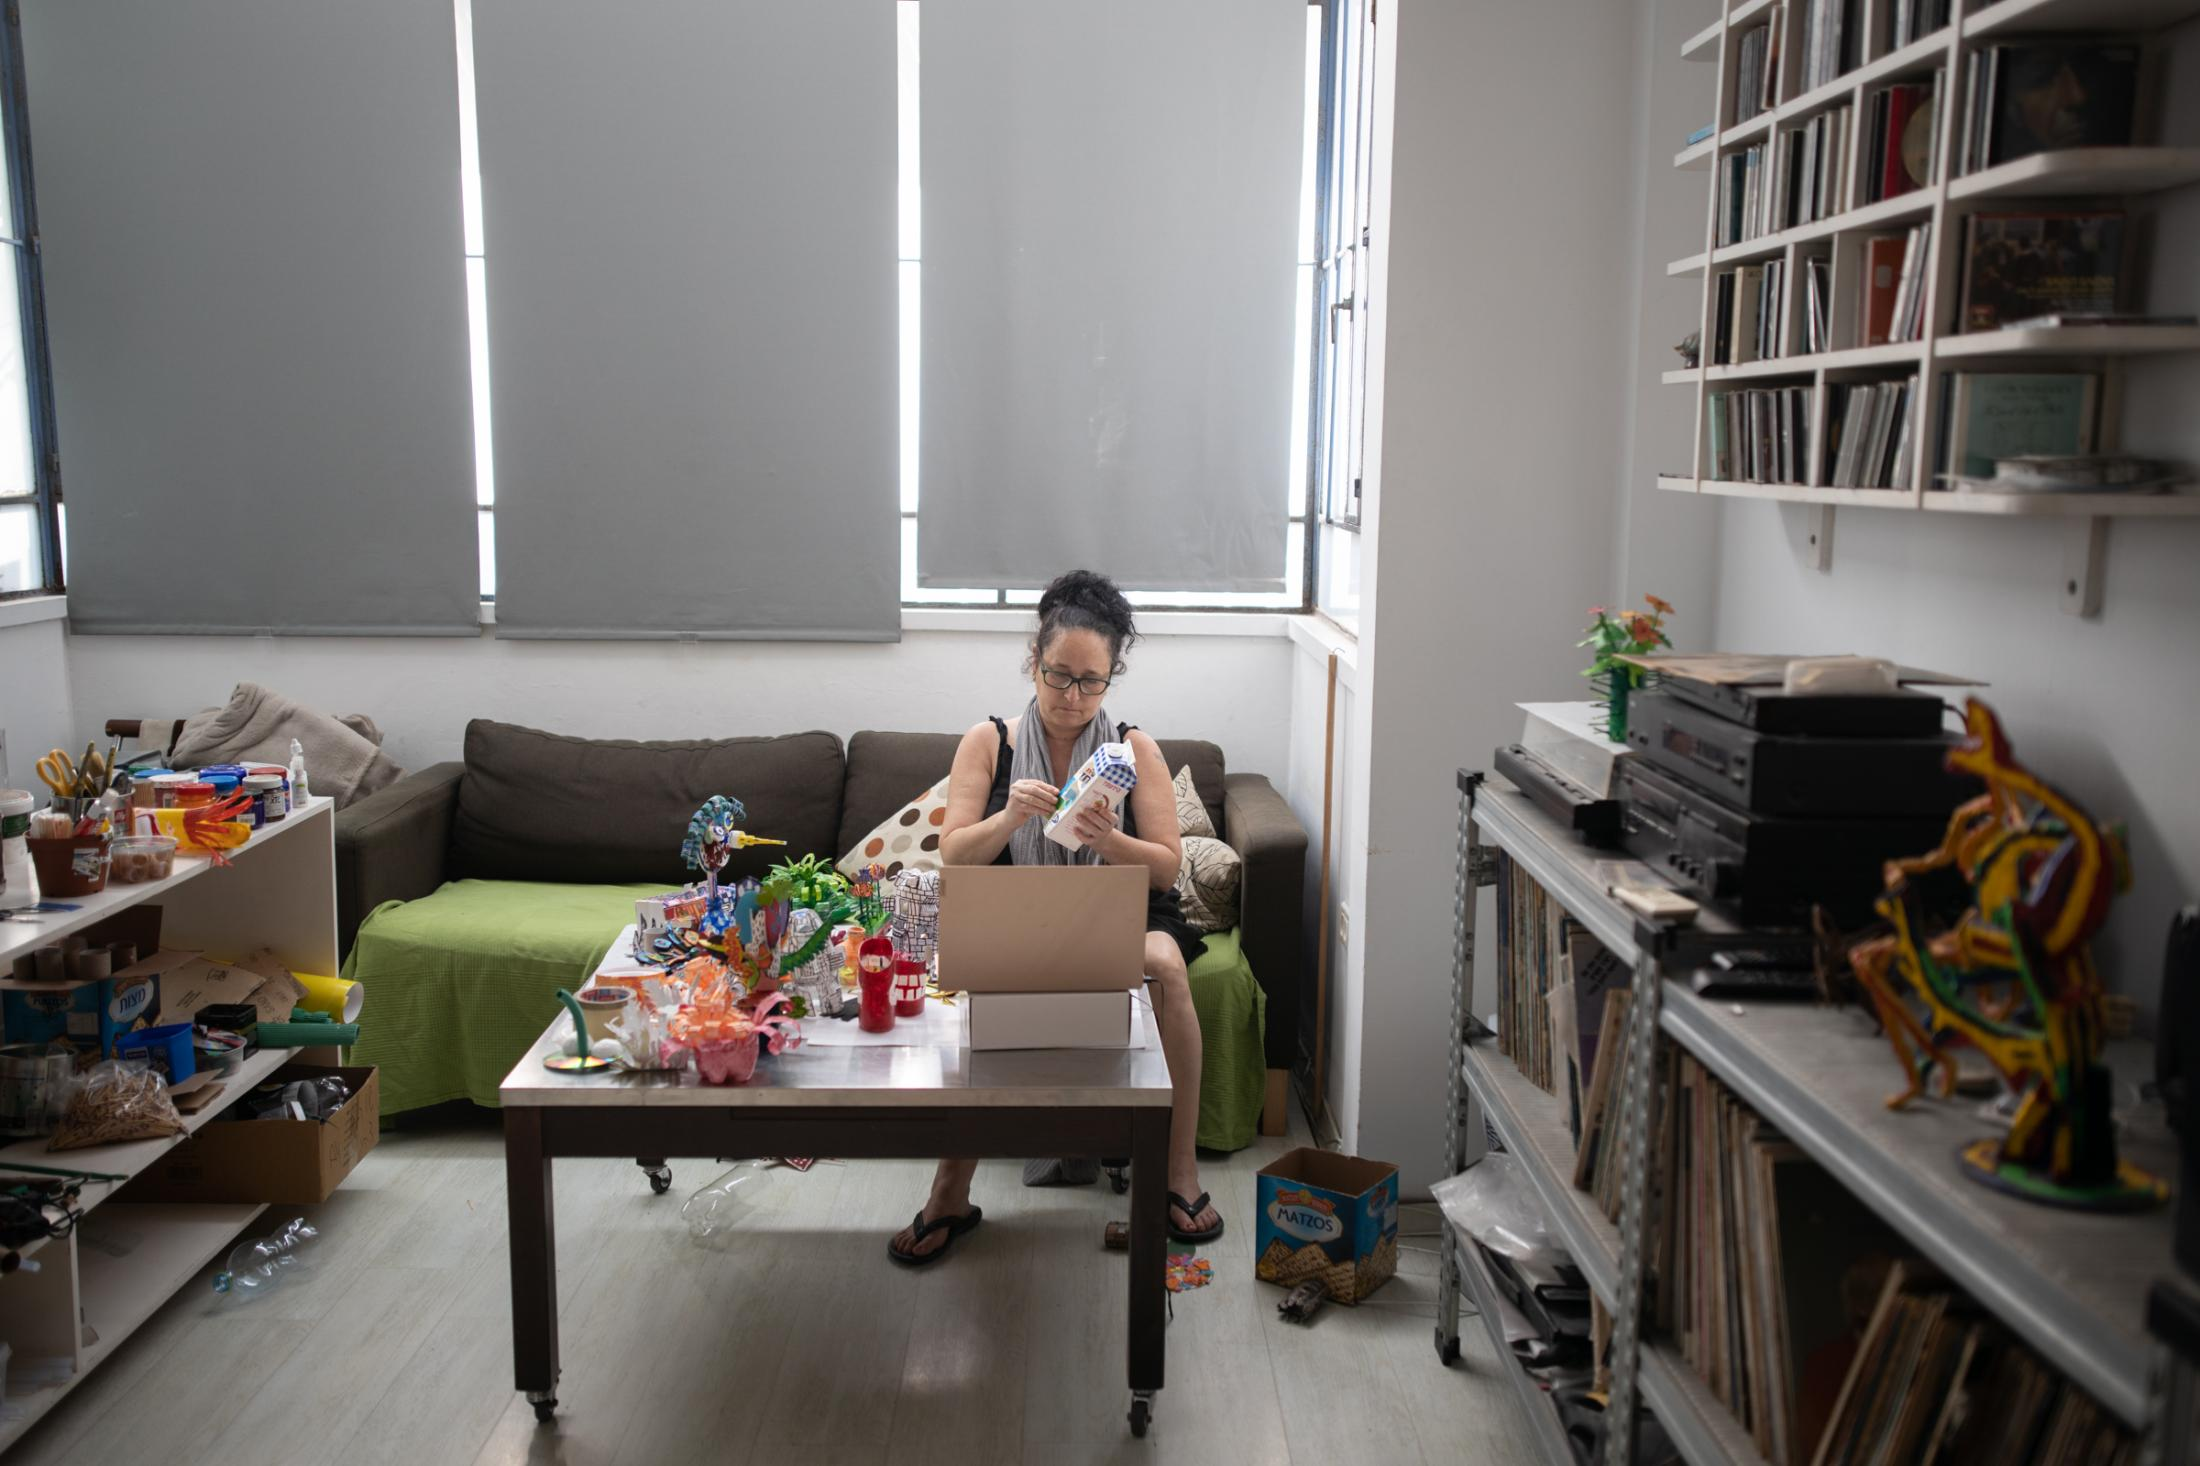 """Art teacher Yael Yaari, 53, creates art from recycling materials as part of an online class for children on Zoom in her home in Tel Aviv, Israel, April, 20, 2020. """"I changed my whole perspective. I mostly work in my apartment now, which has basically become my studio. I spend all day here, which means I cook here, I work here, I have my breaks here - There is something about it, my life and my art became intertwined. I like it."""""""